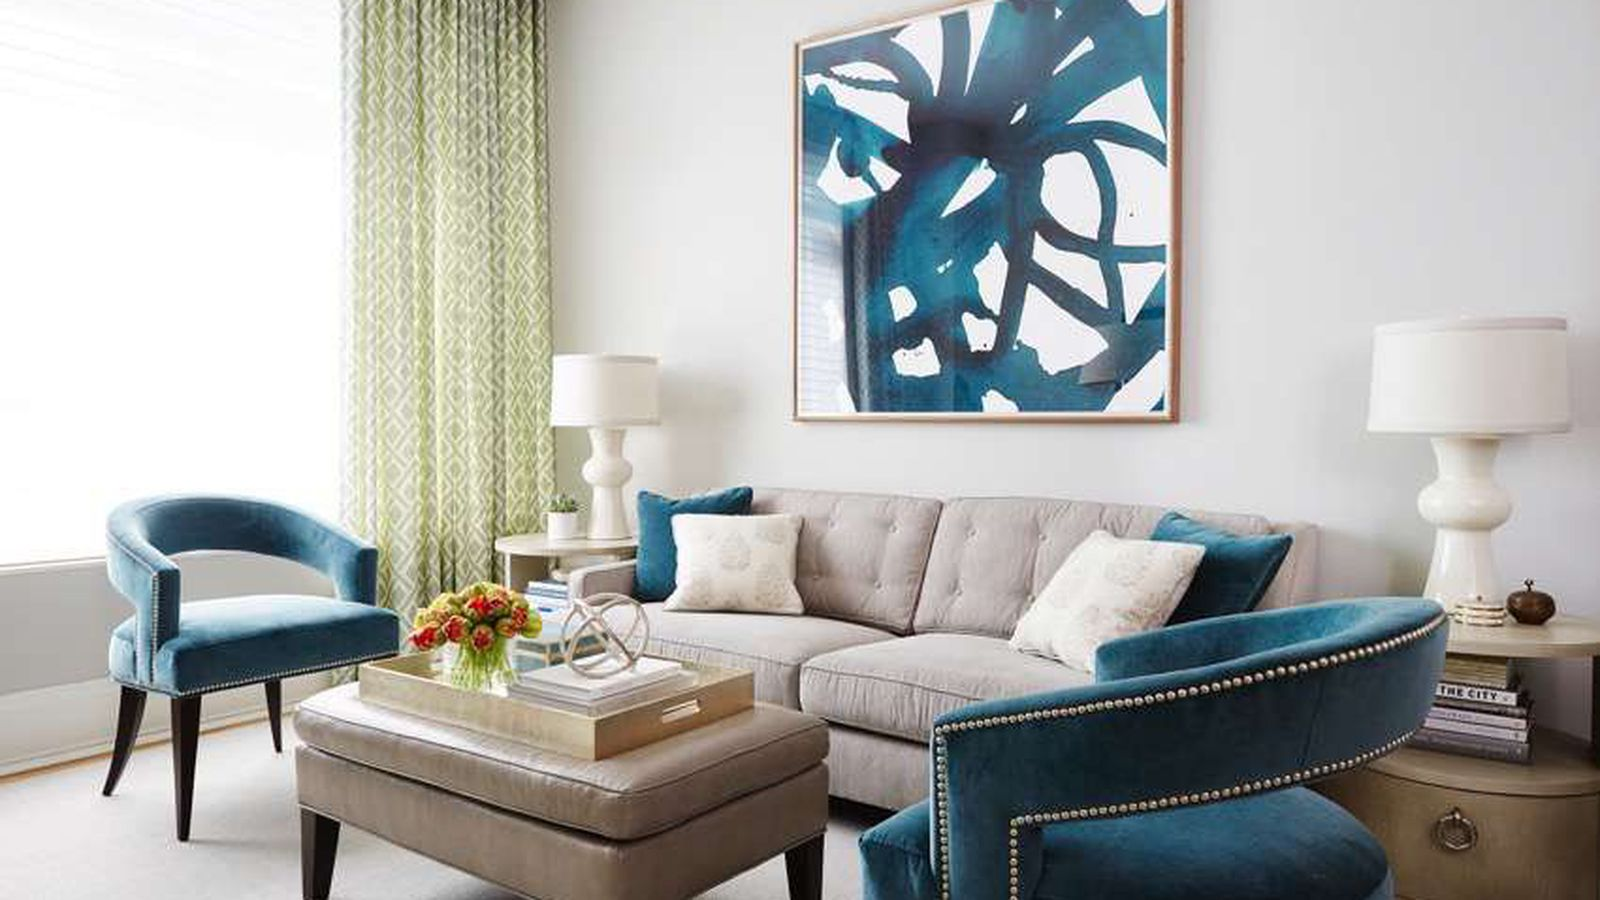 Interior designer Nicole Gibbons is Oprah-approved - Curbed